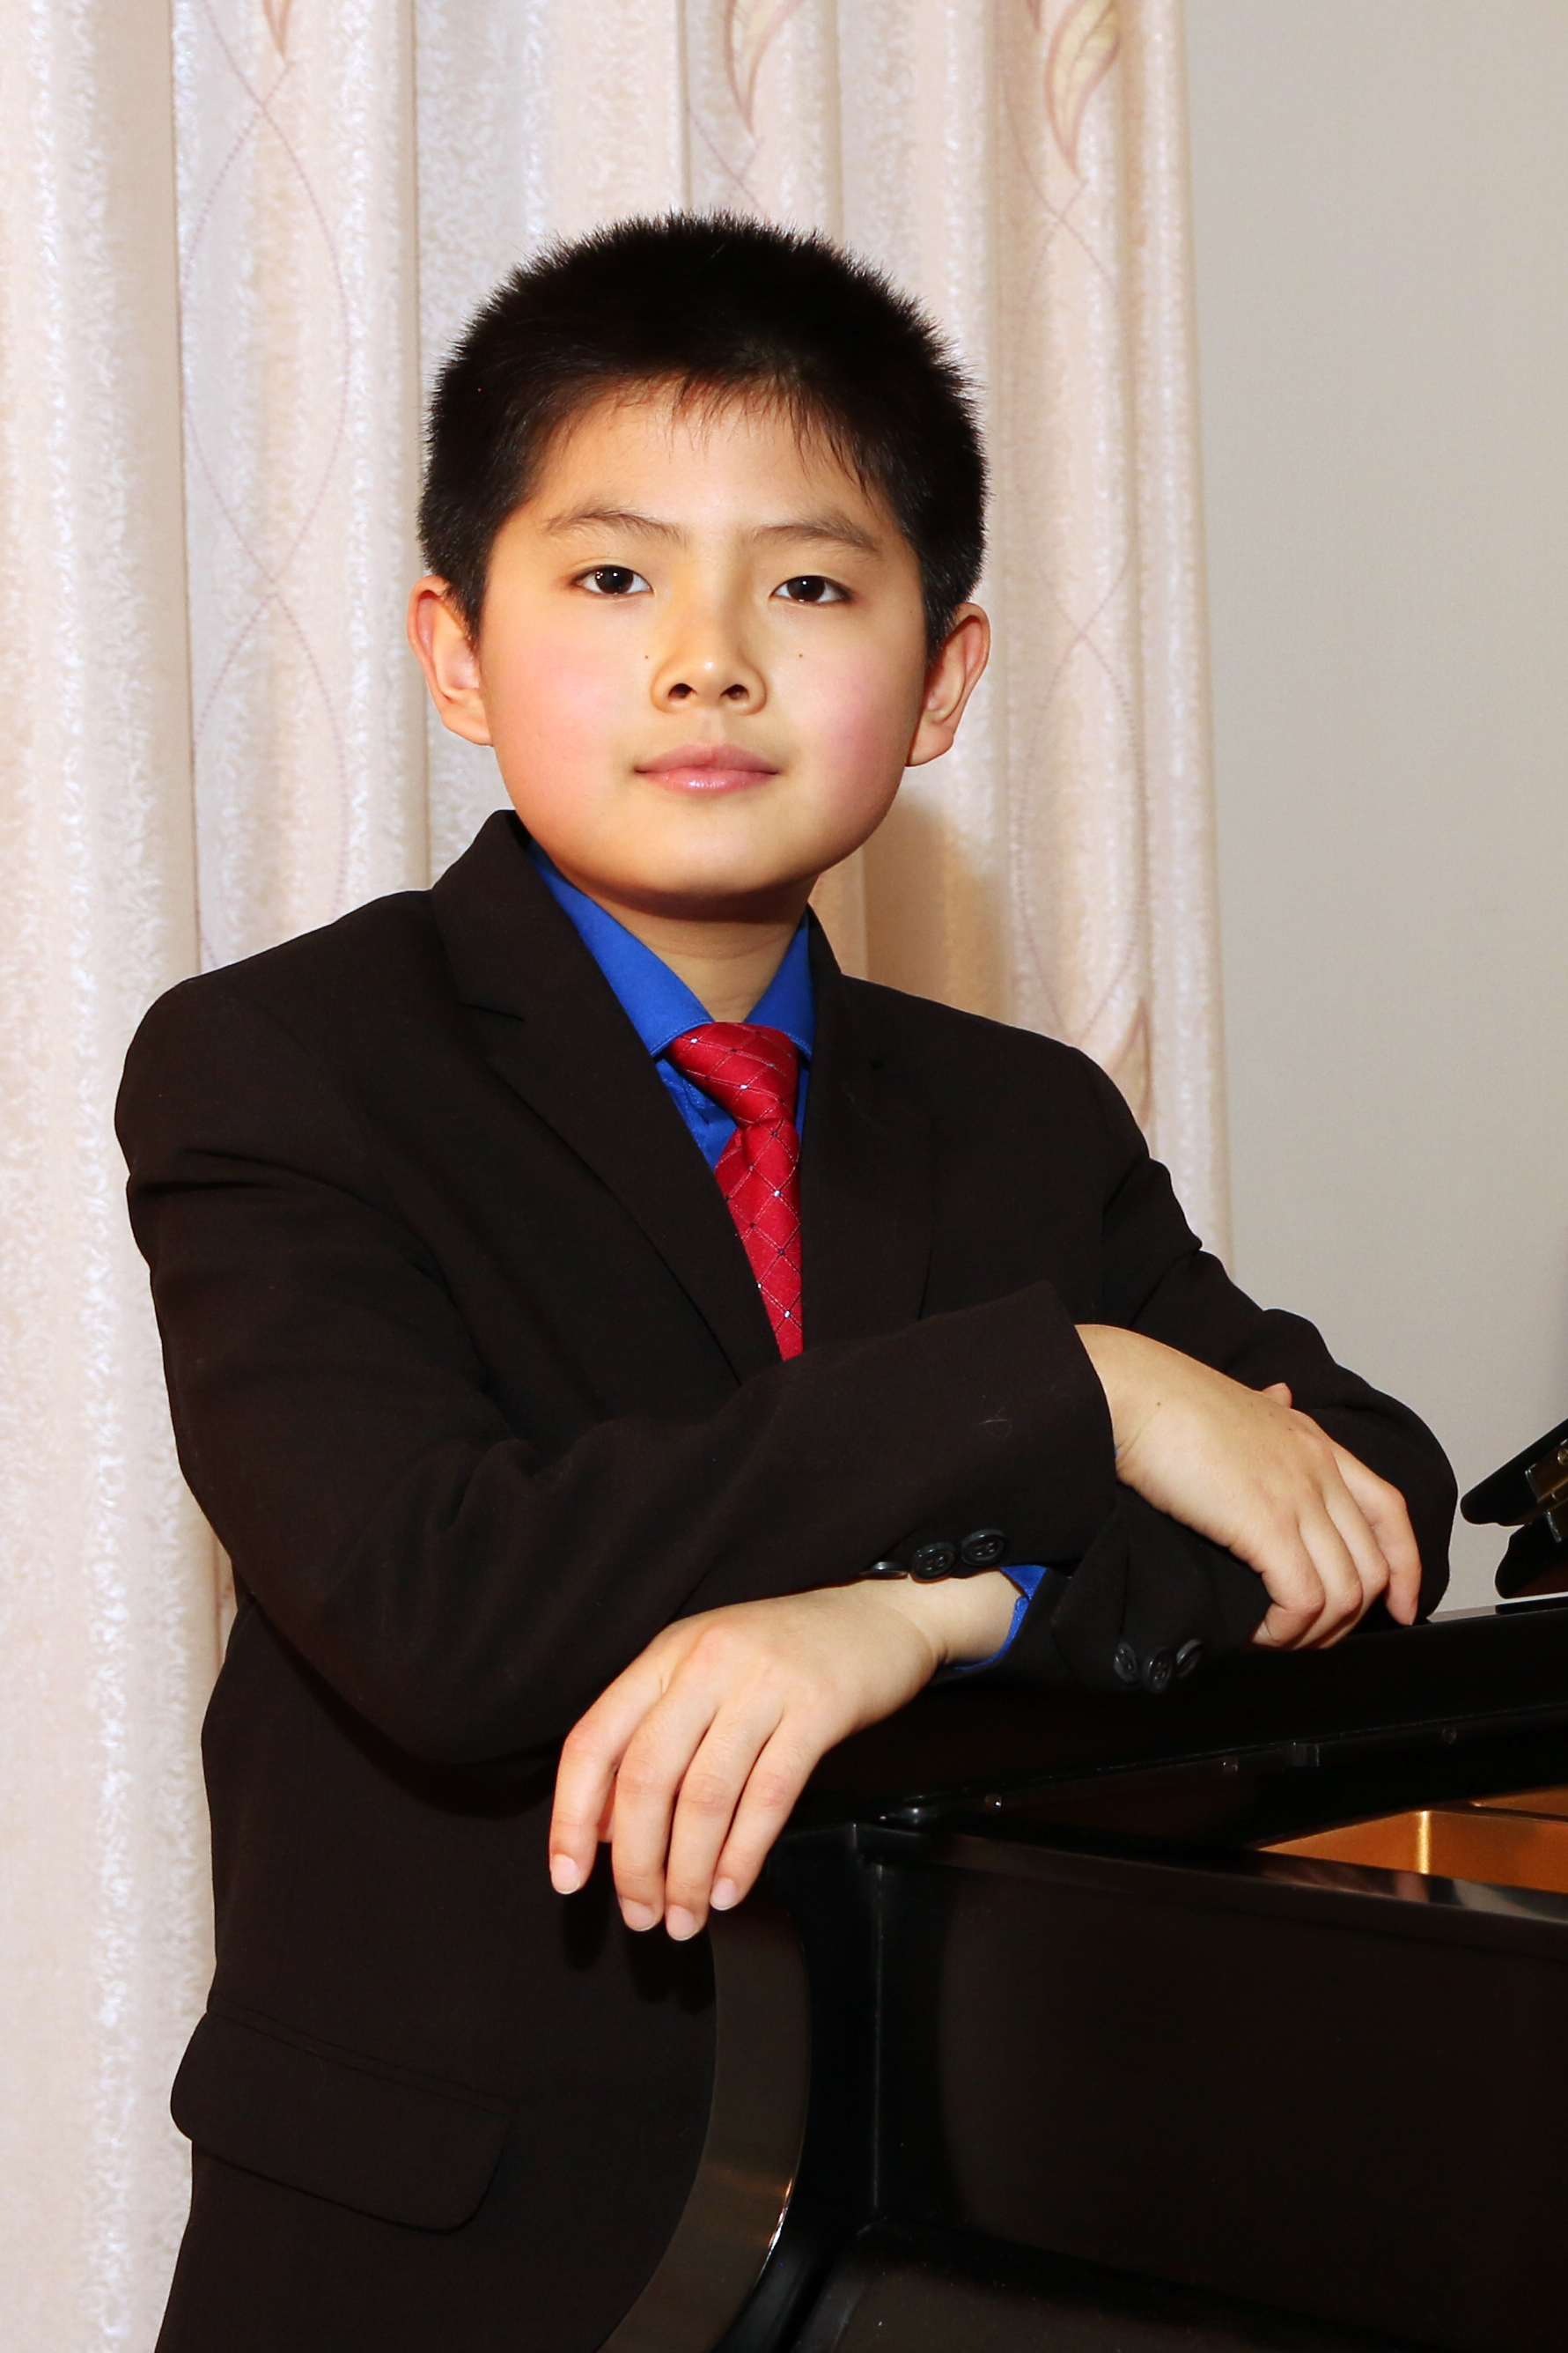 William Ge, PA Student of Natalie Zhu